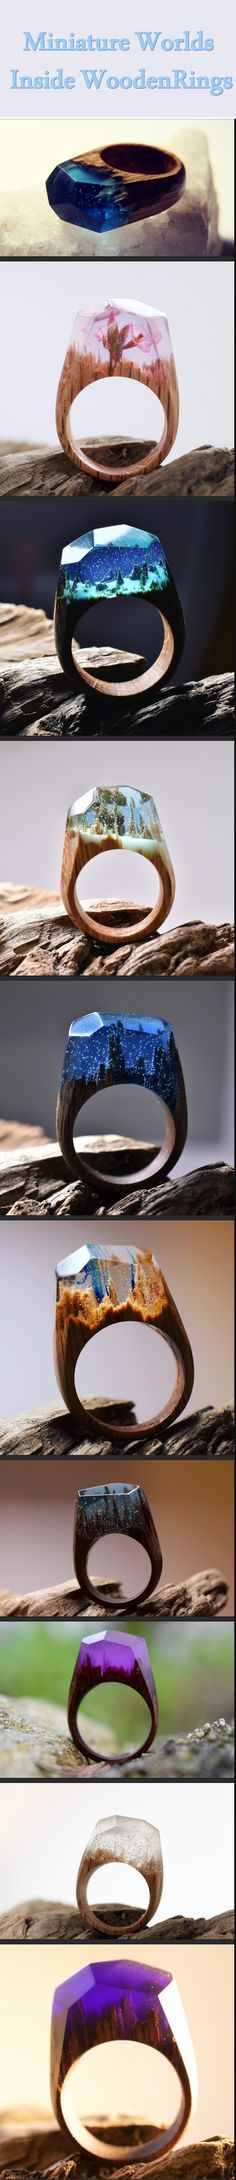 The Mystery Of The Deep Blue Ocean Sharp Edges Under A Sea Of - Inside each of these wooden rings is a beautiful hidden world